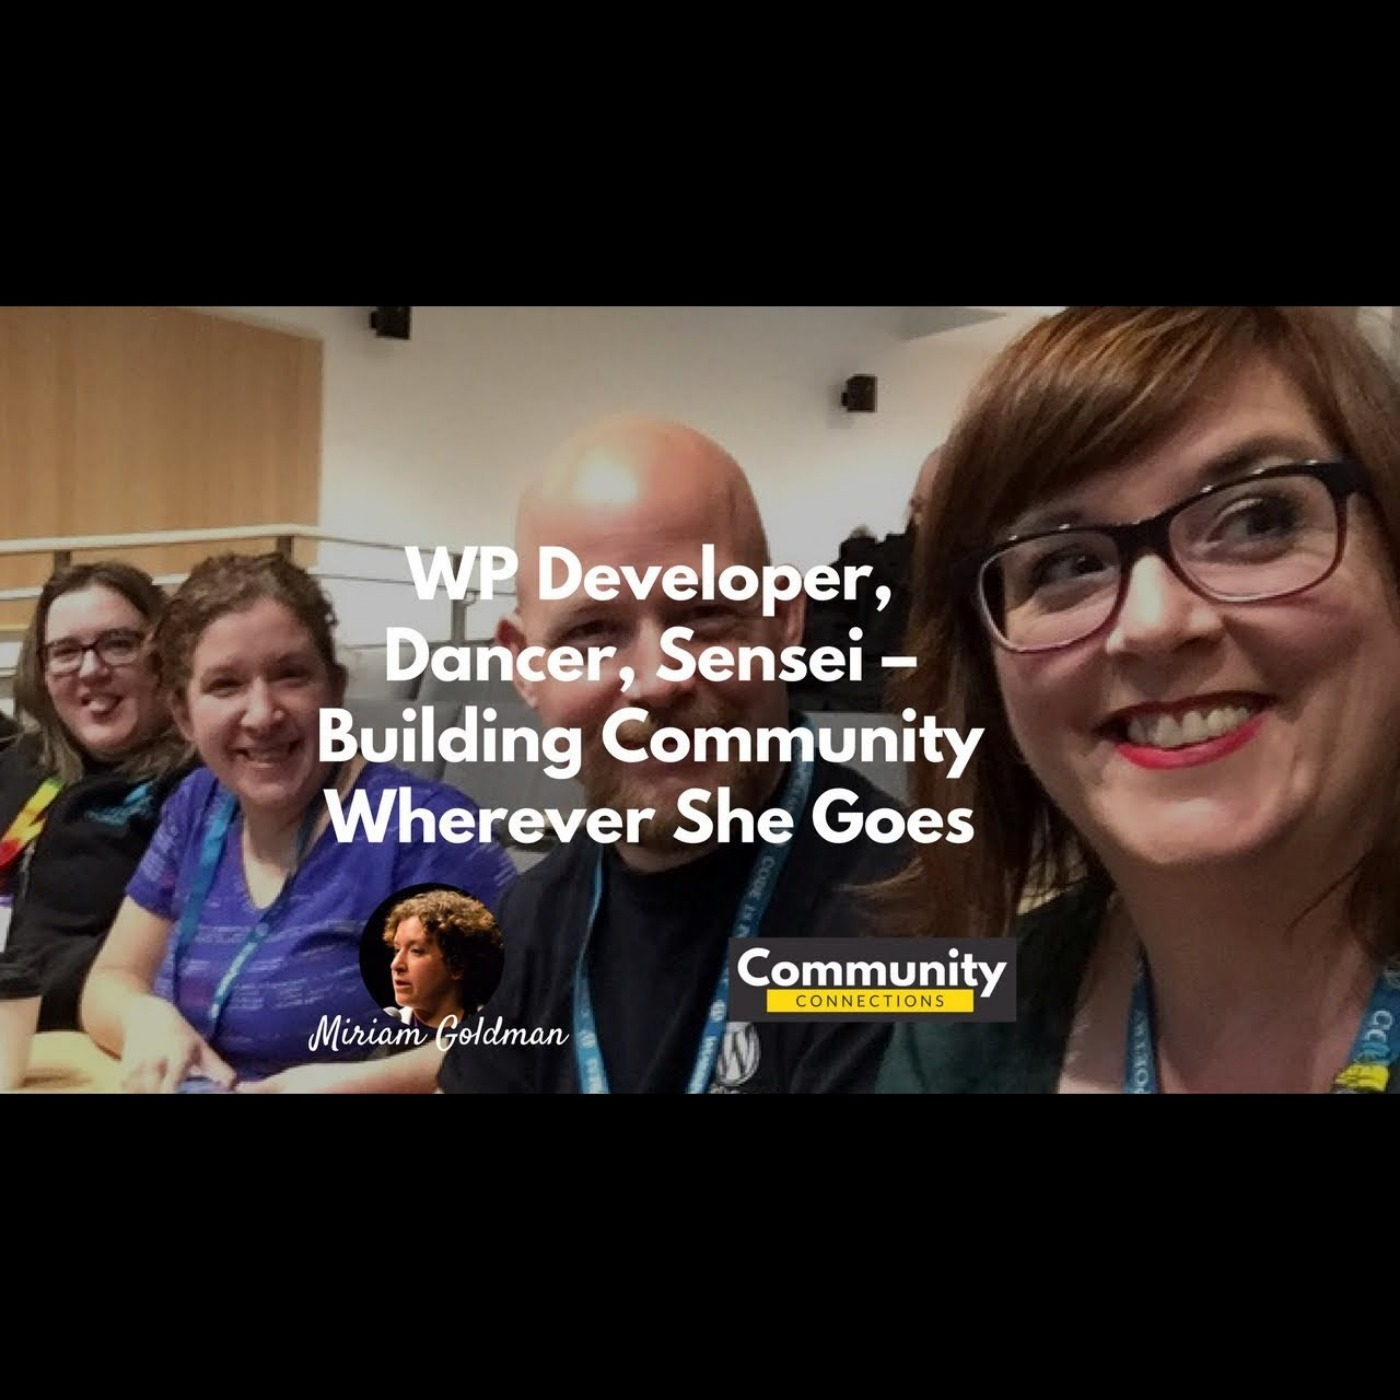 EP12 – Miriam Goldman: WP Developer, Dancer, Sensei – Building Community Wherever She Goes – Community Connections